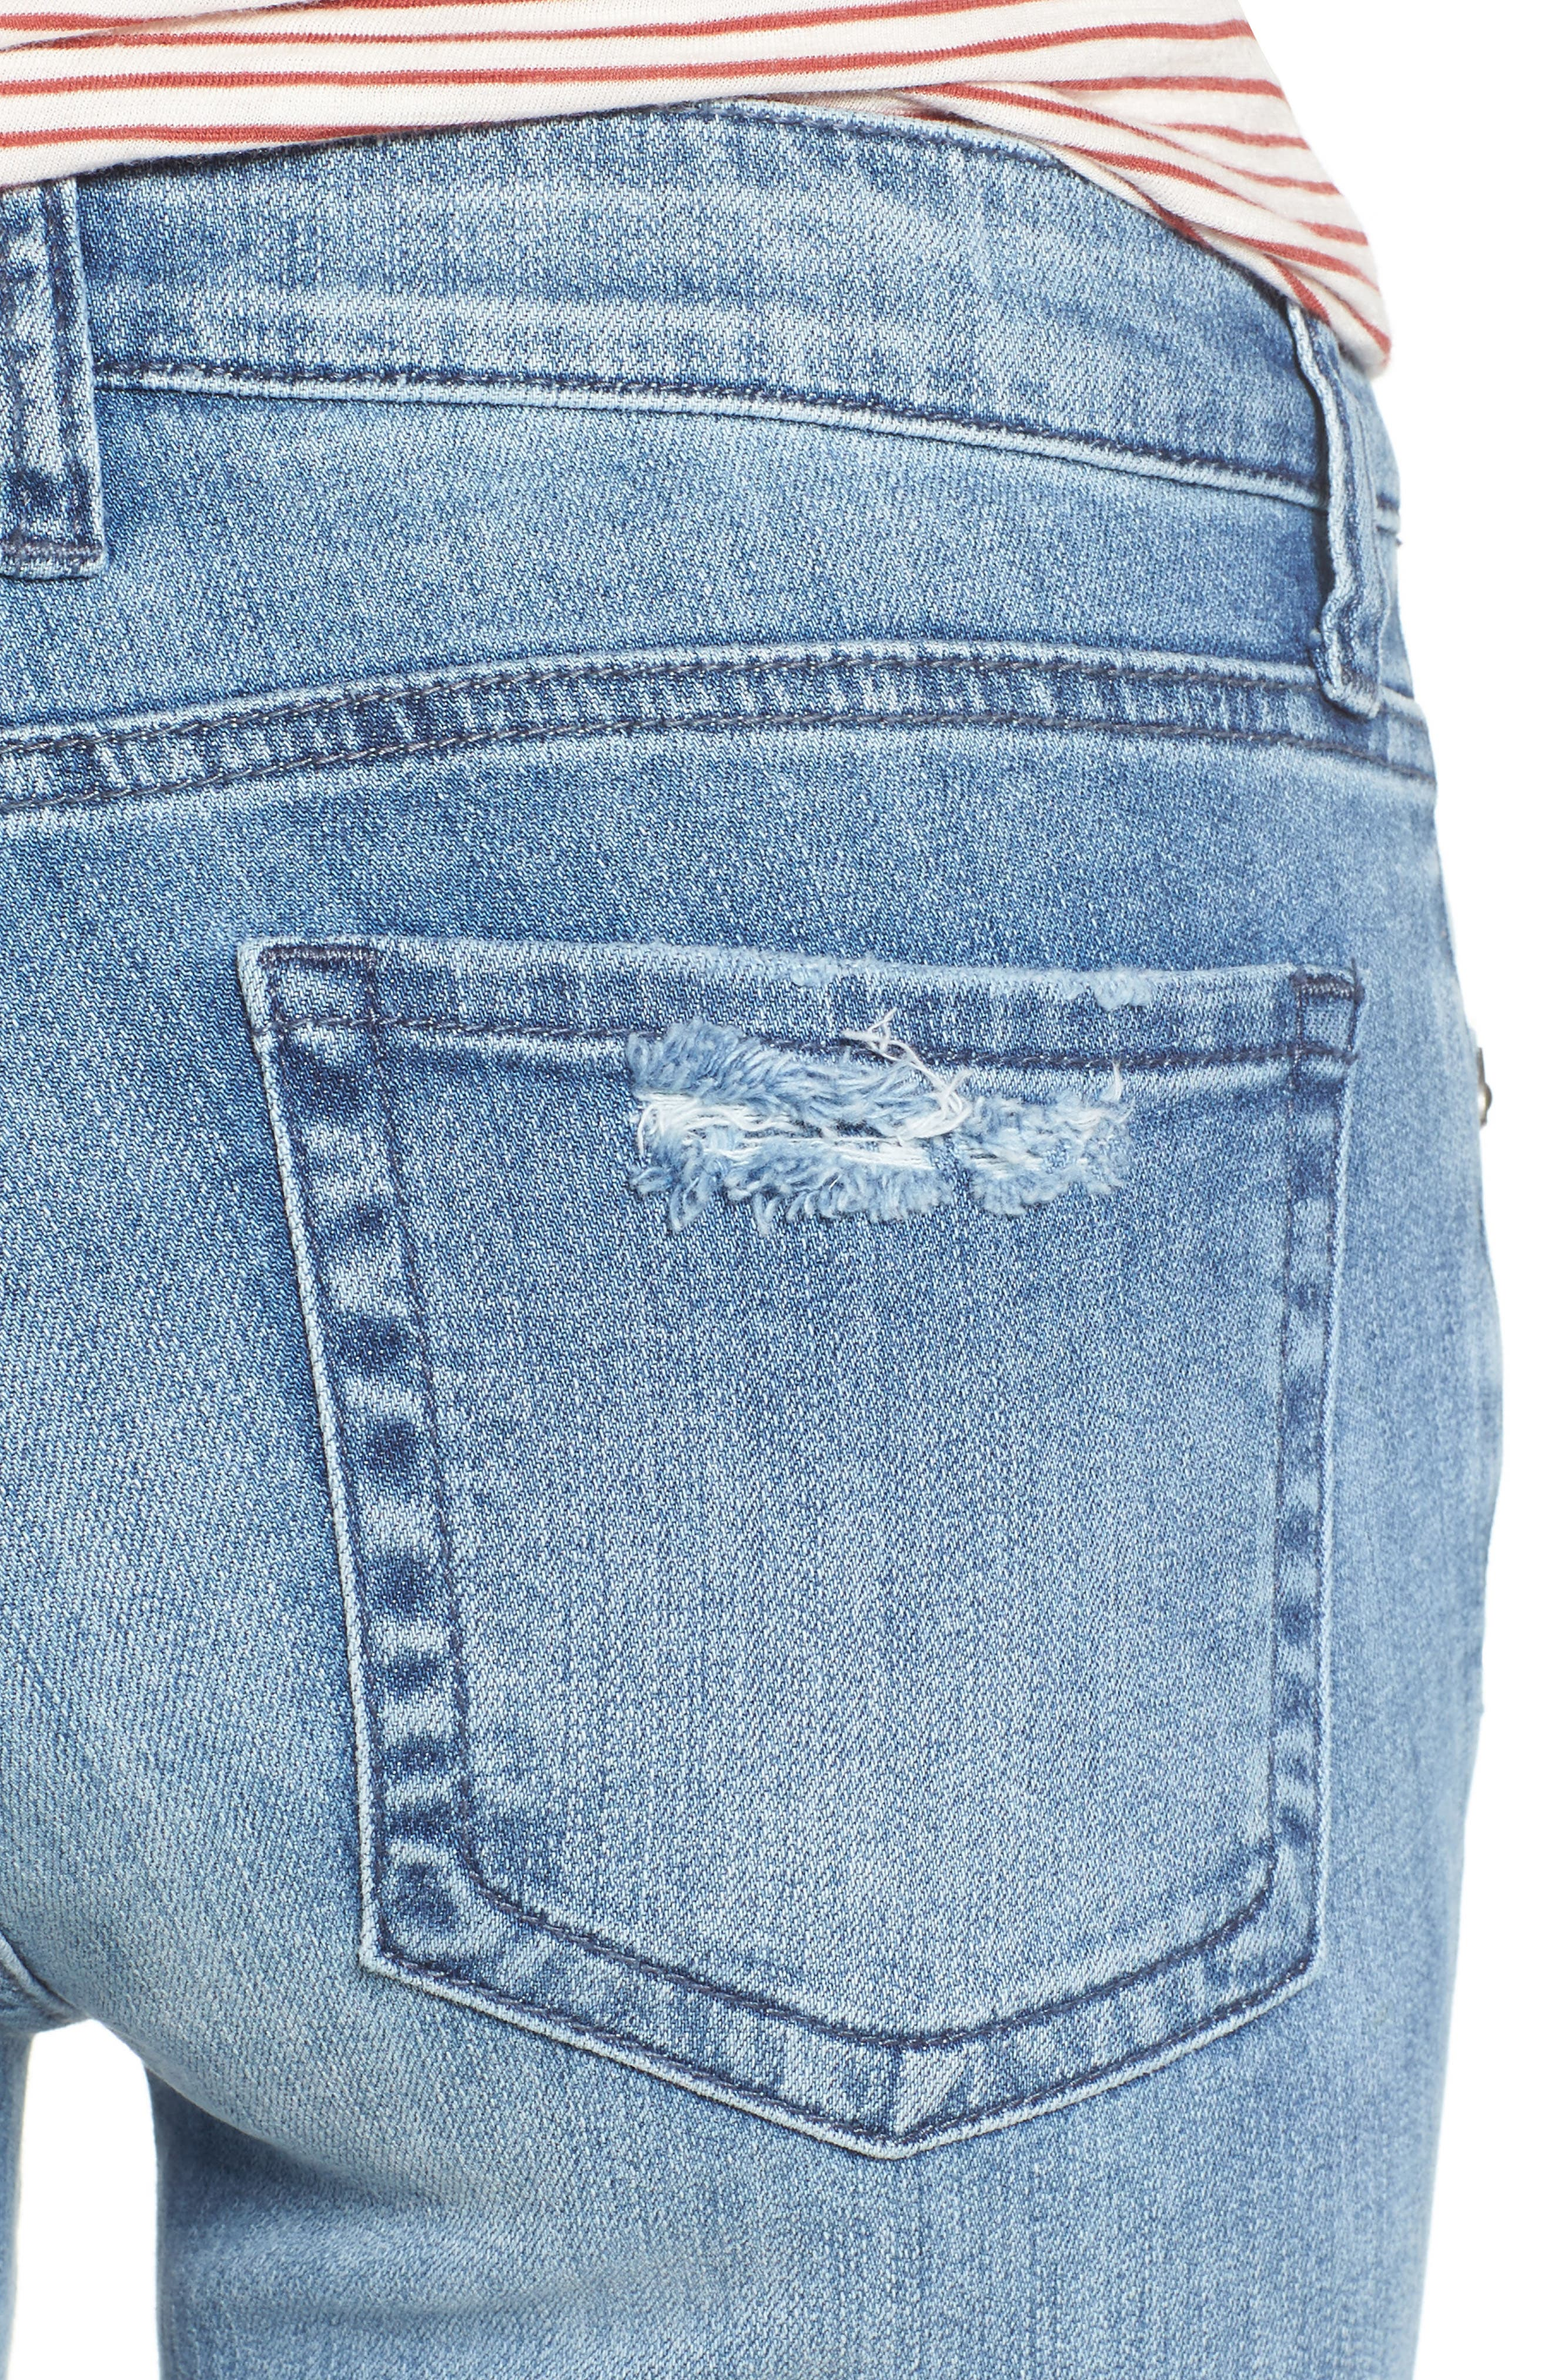 Alternate Image 4  - KUT from the Kloth Catherine Ripped & Repaired Boyfriend Jeans (Novel)